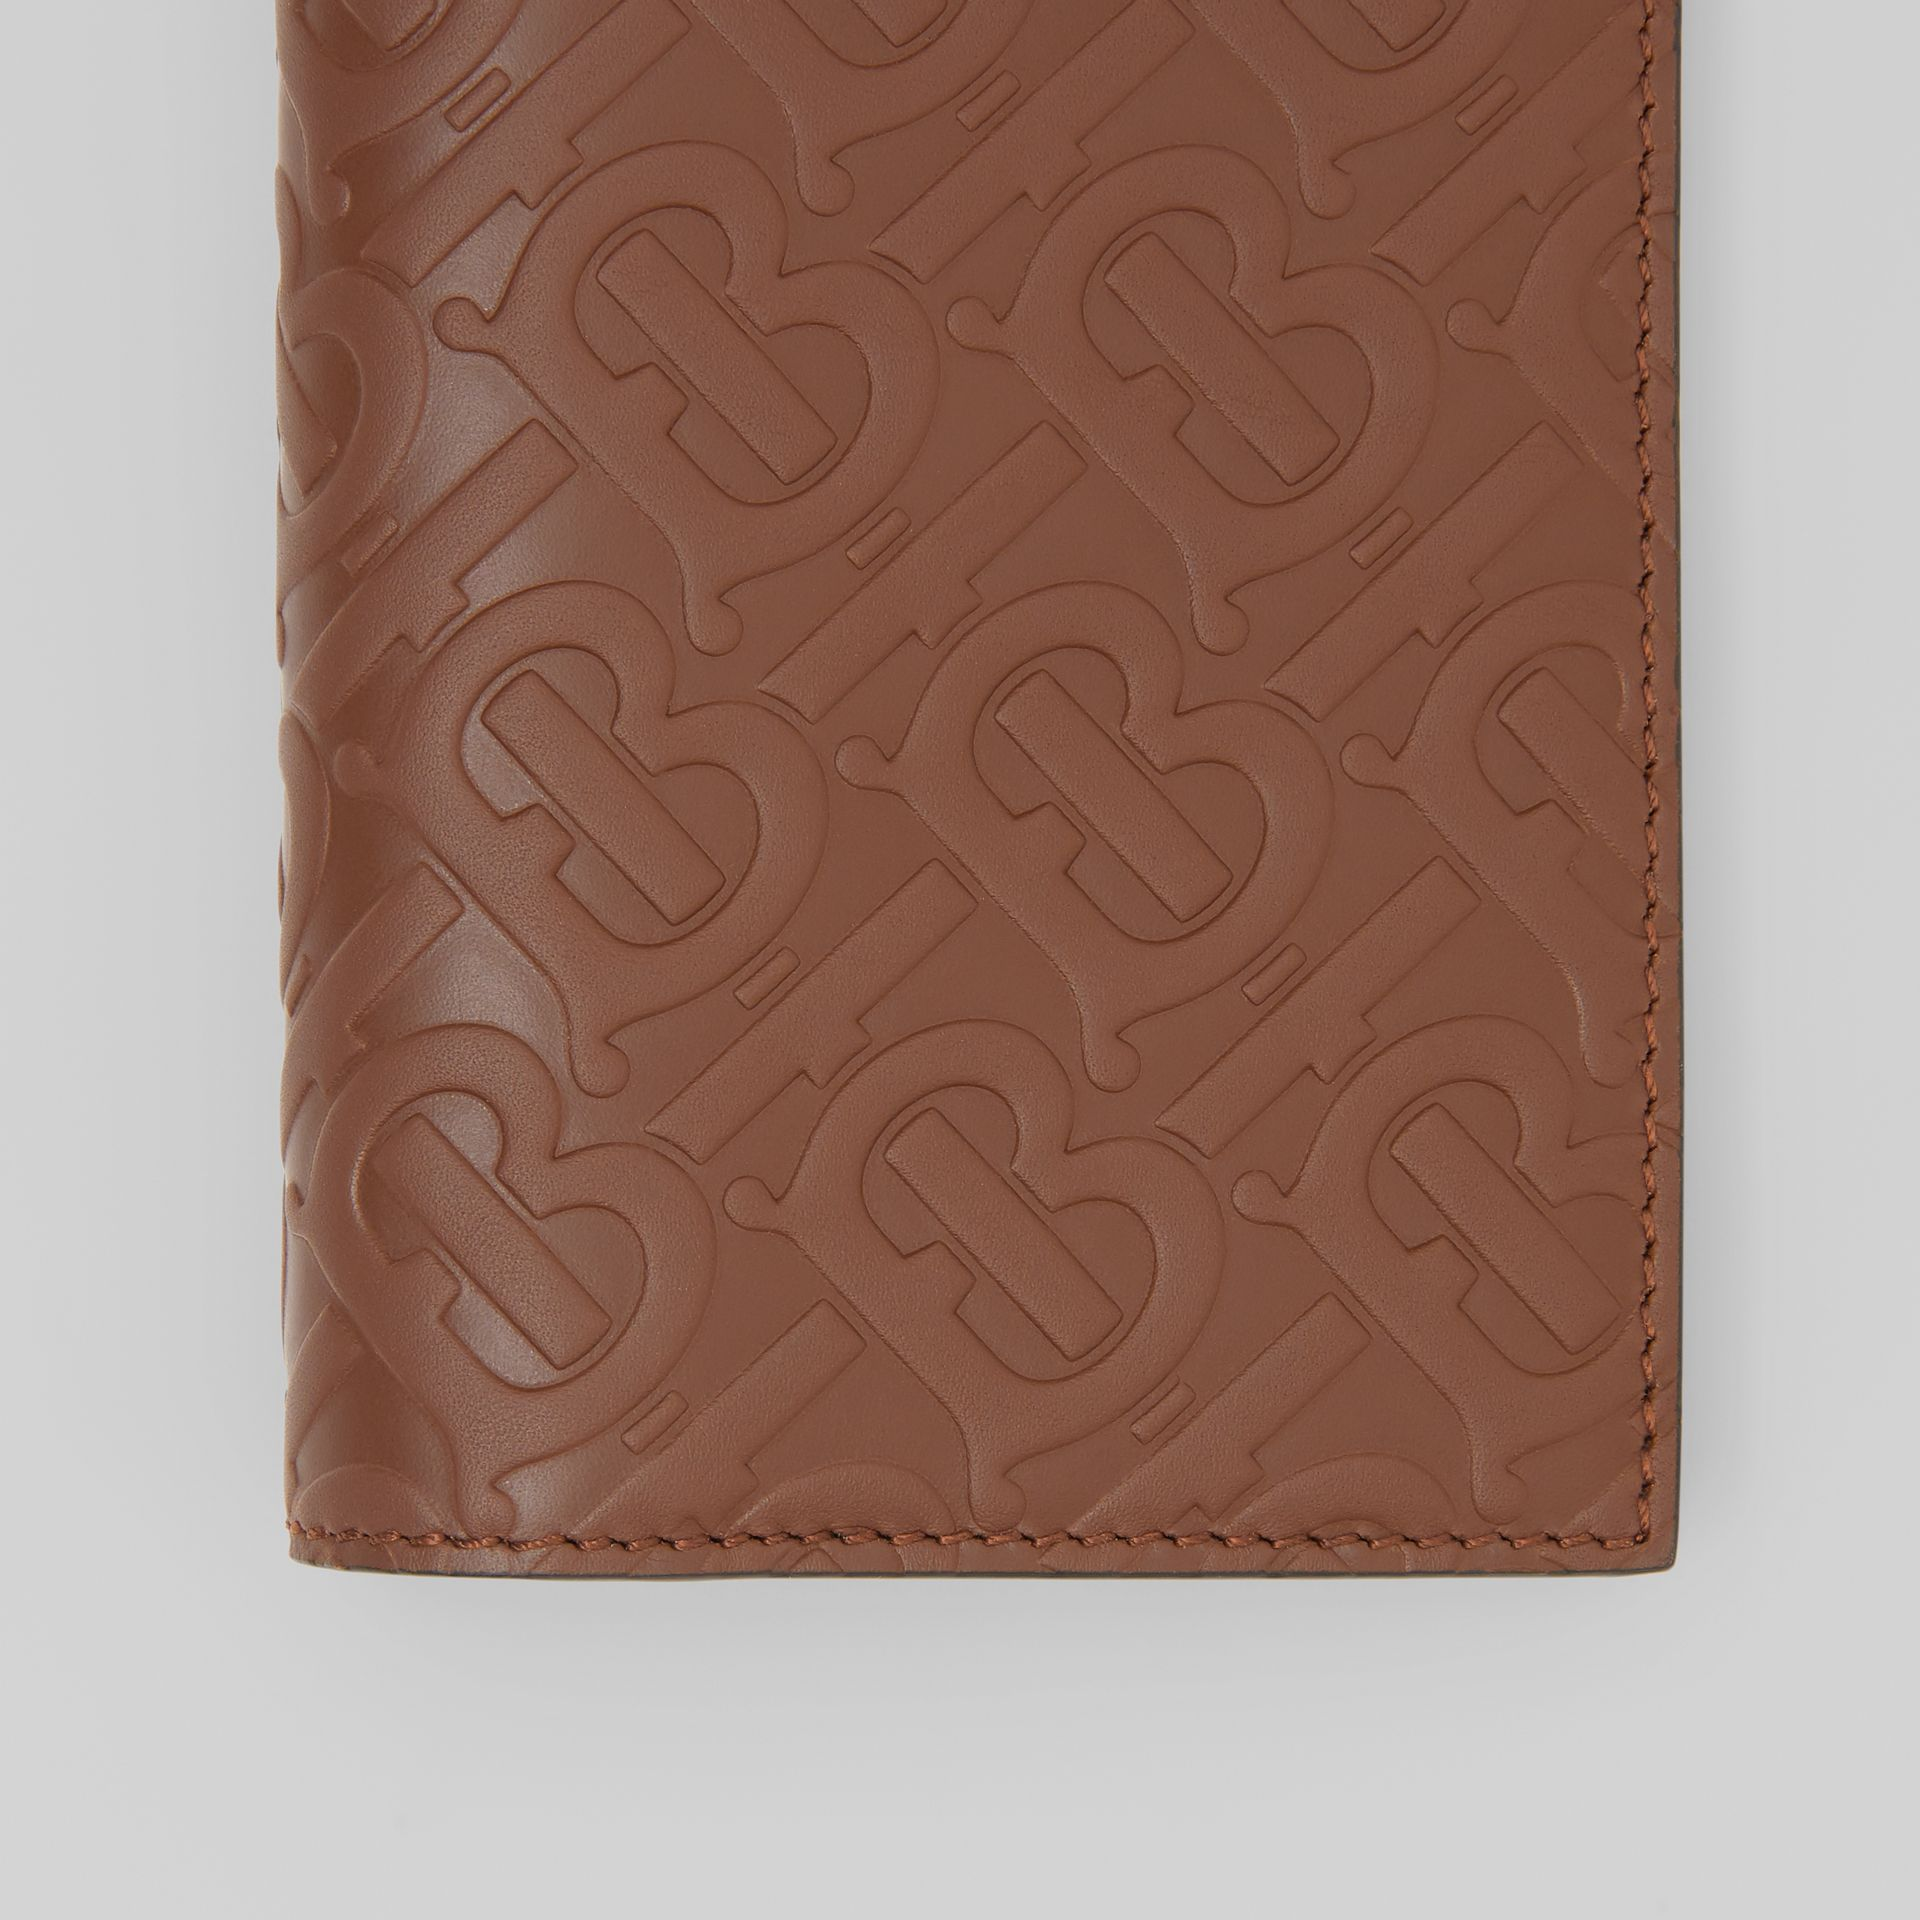 Monogram Leather Continental Wallet in Dark Tan - Men | Burberry - gallery image 1